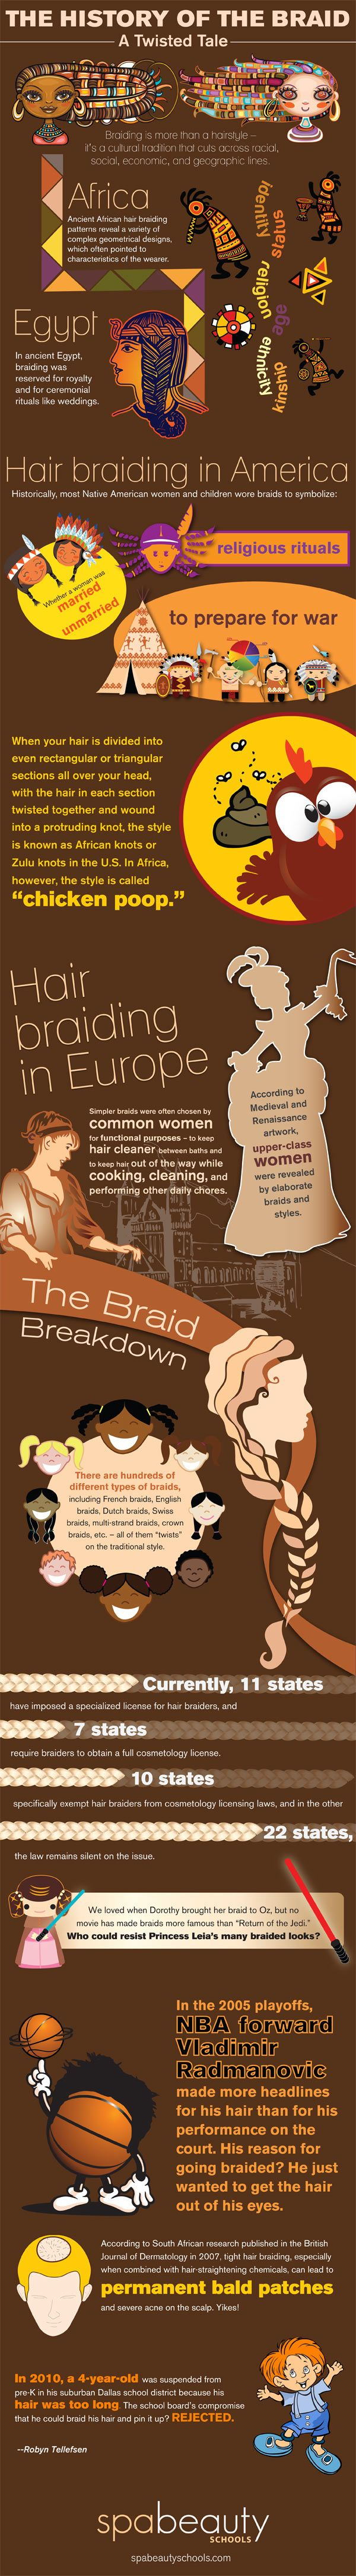 Infographic | Ever wanted to know the history of the hair braid? Chicken Poop!? Whodathunkit!? LOL! @Zakiya Abdus-Salaam